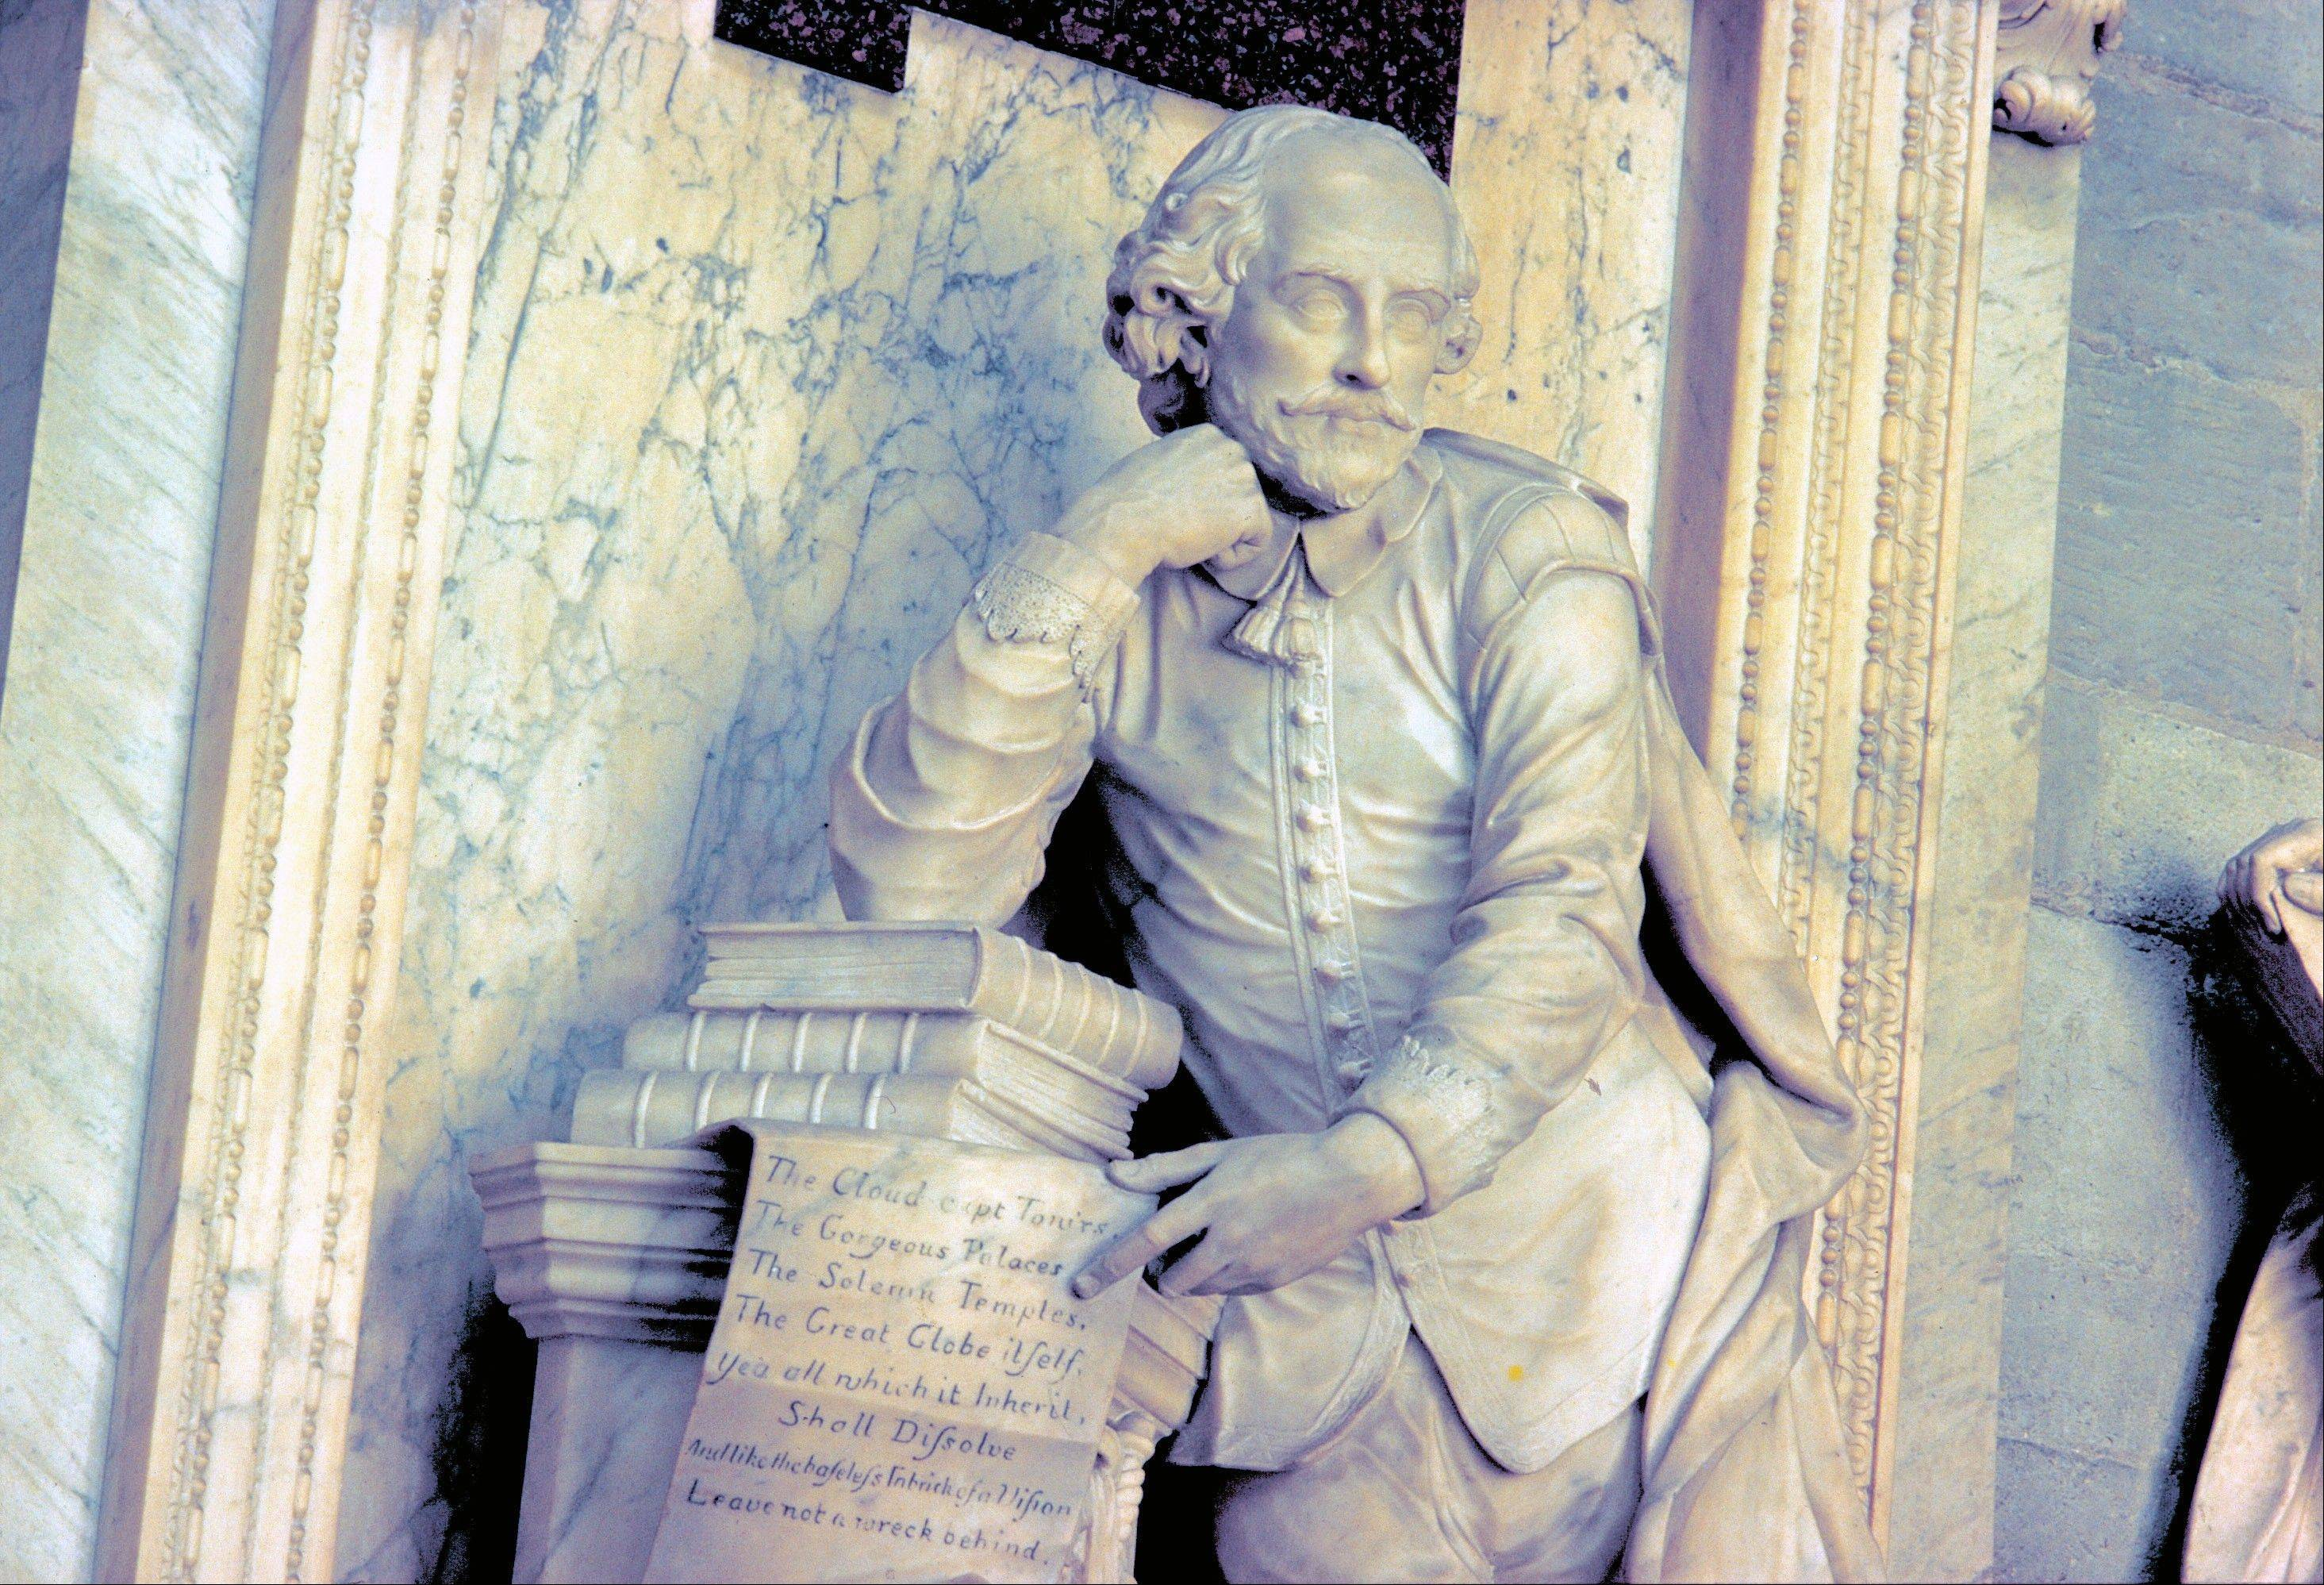 A monument to William Shakespeare is in the Poets Corner at Westminster Abbey in London. Many famous British writers are memorialized here, including Charles Dickens and Geoffrey Chaucer.